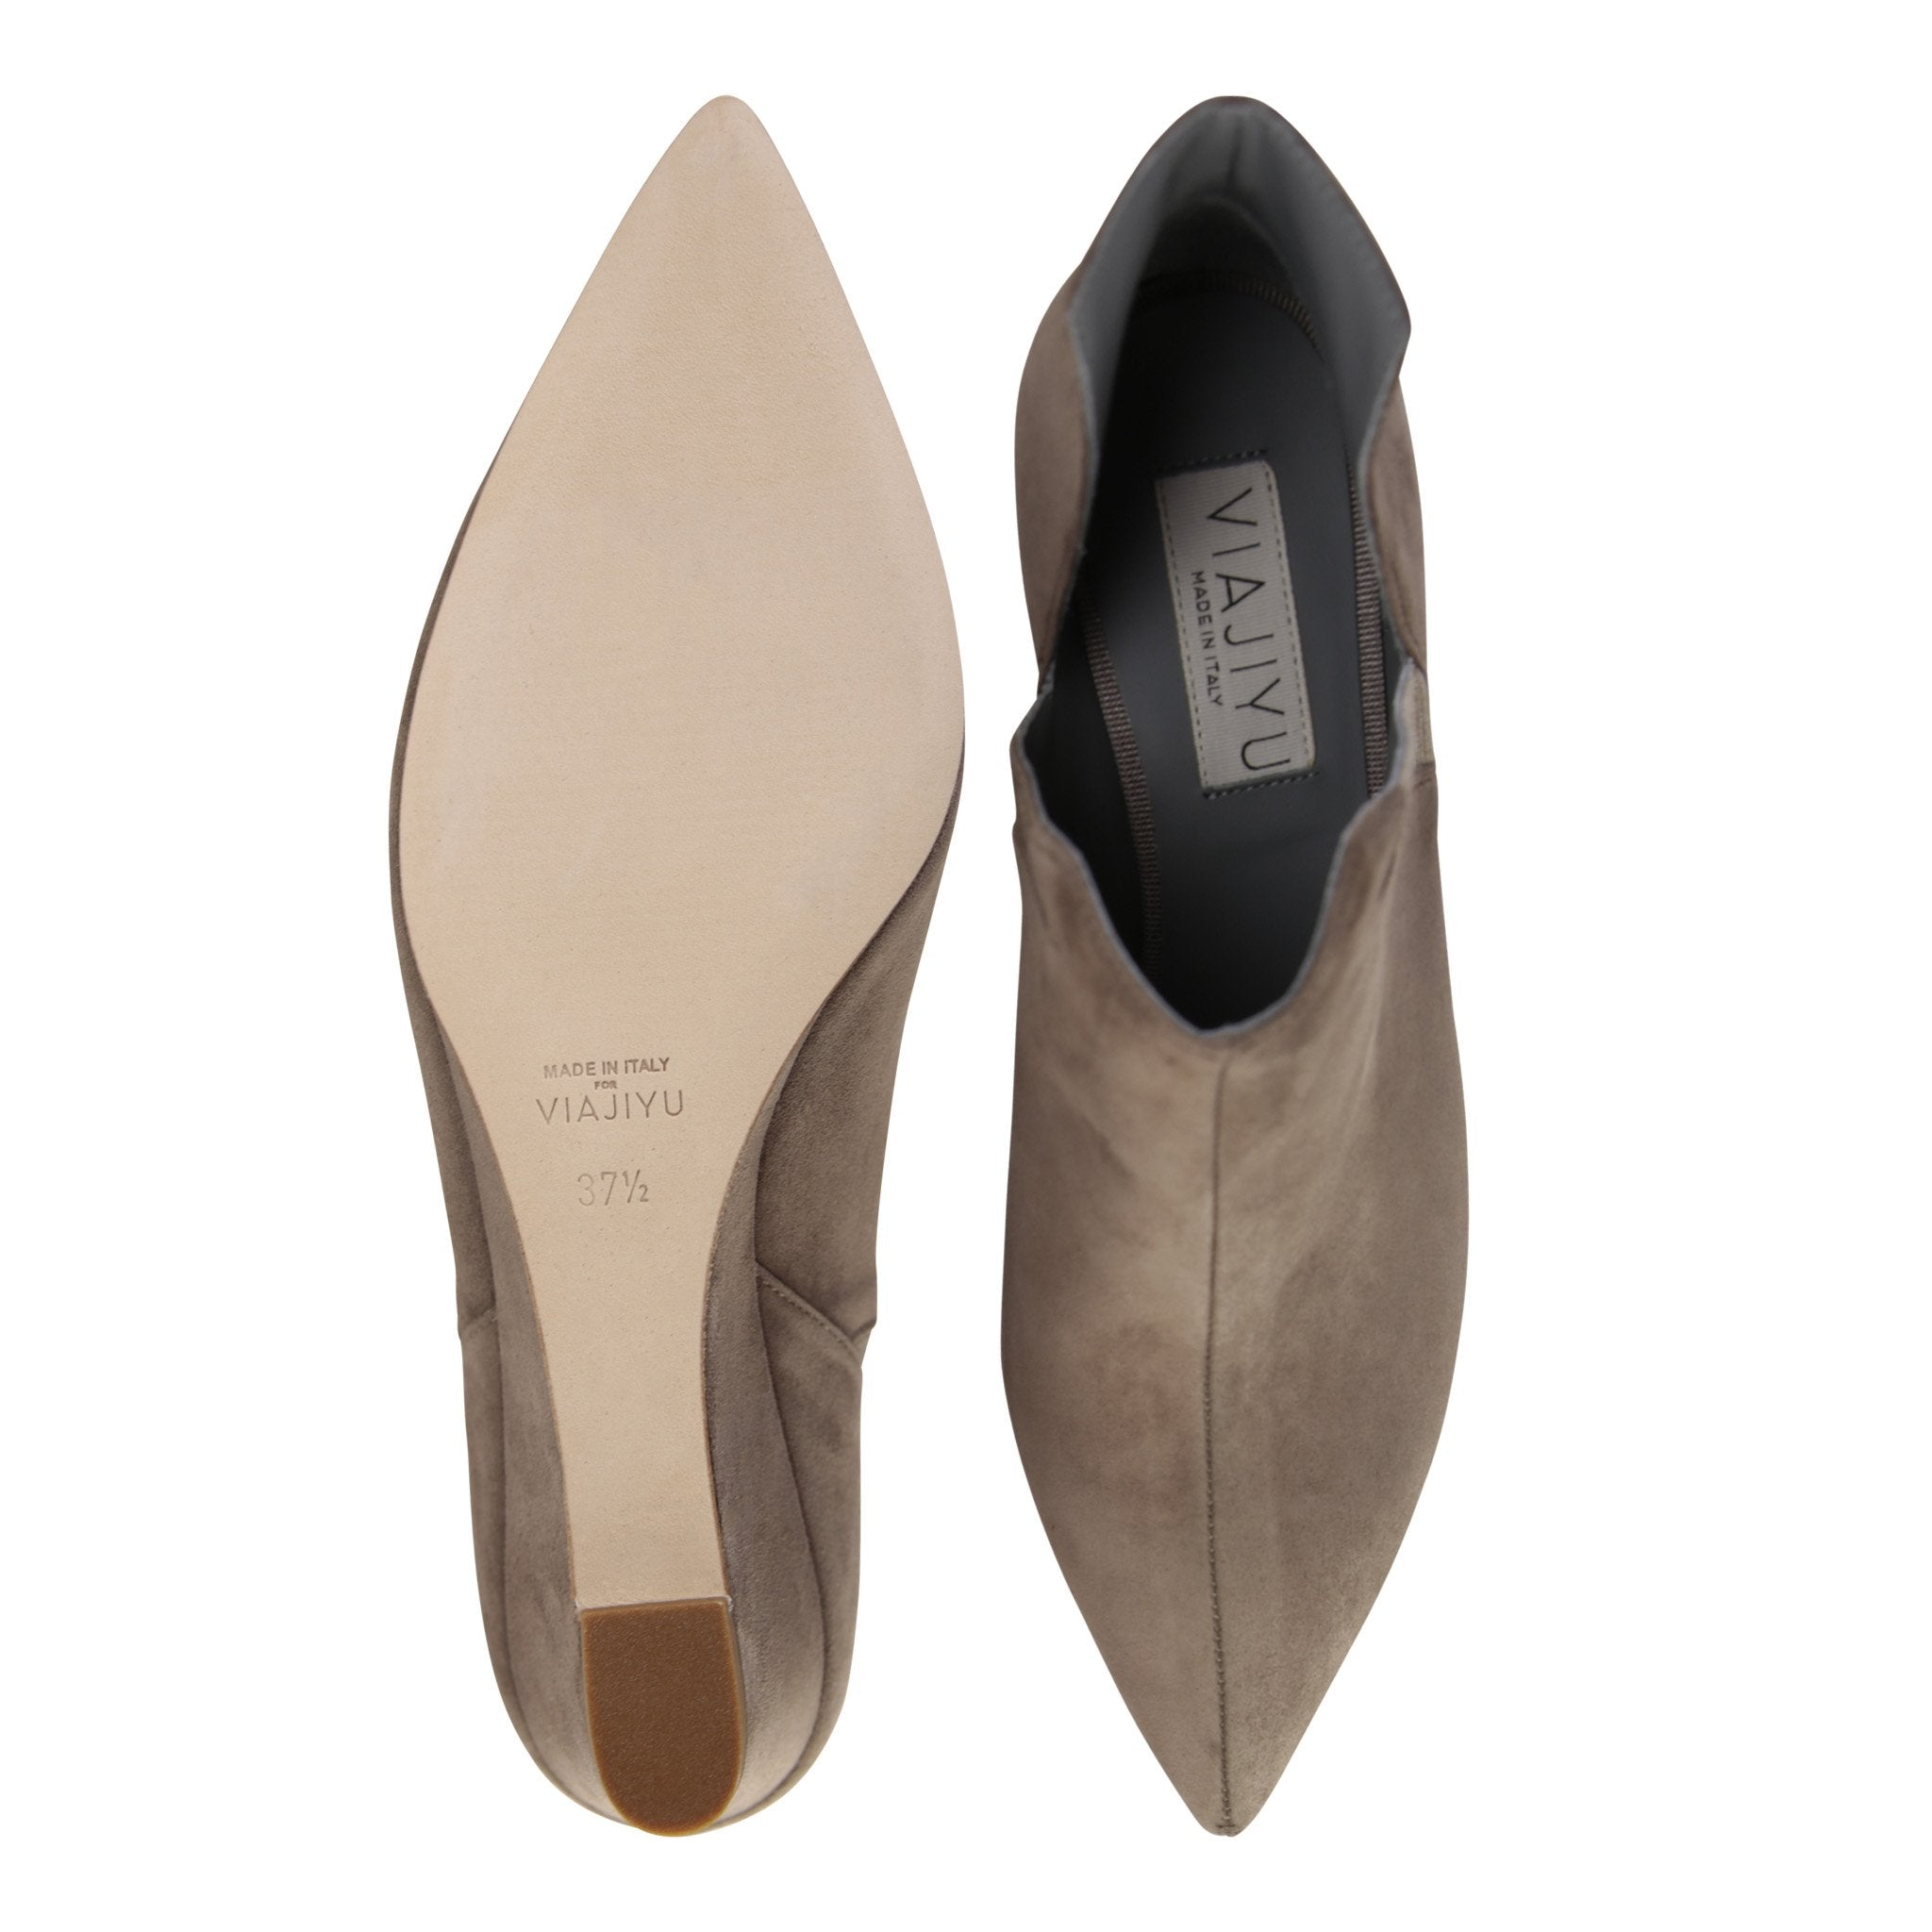 SYRENE - Velukid Taupe + Grosgrain Cenere, VIAJIYU - Women's Hand Made Sustainable Luxury Shoes. Made in Italy. Made to Order.